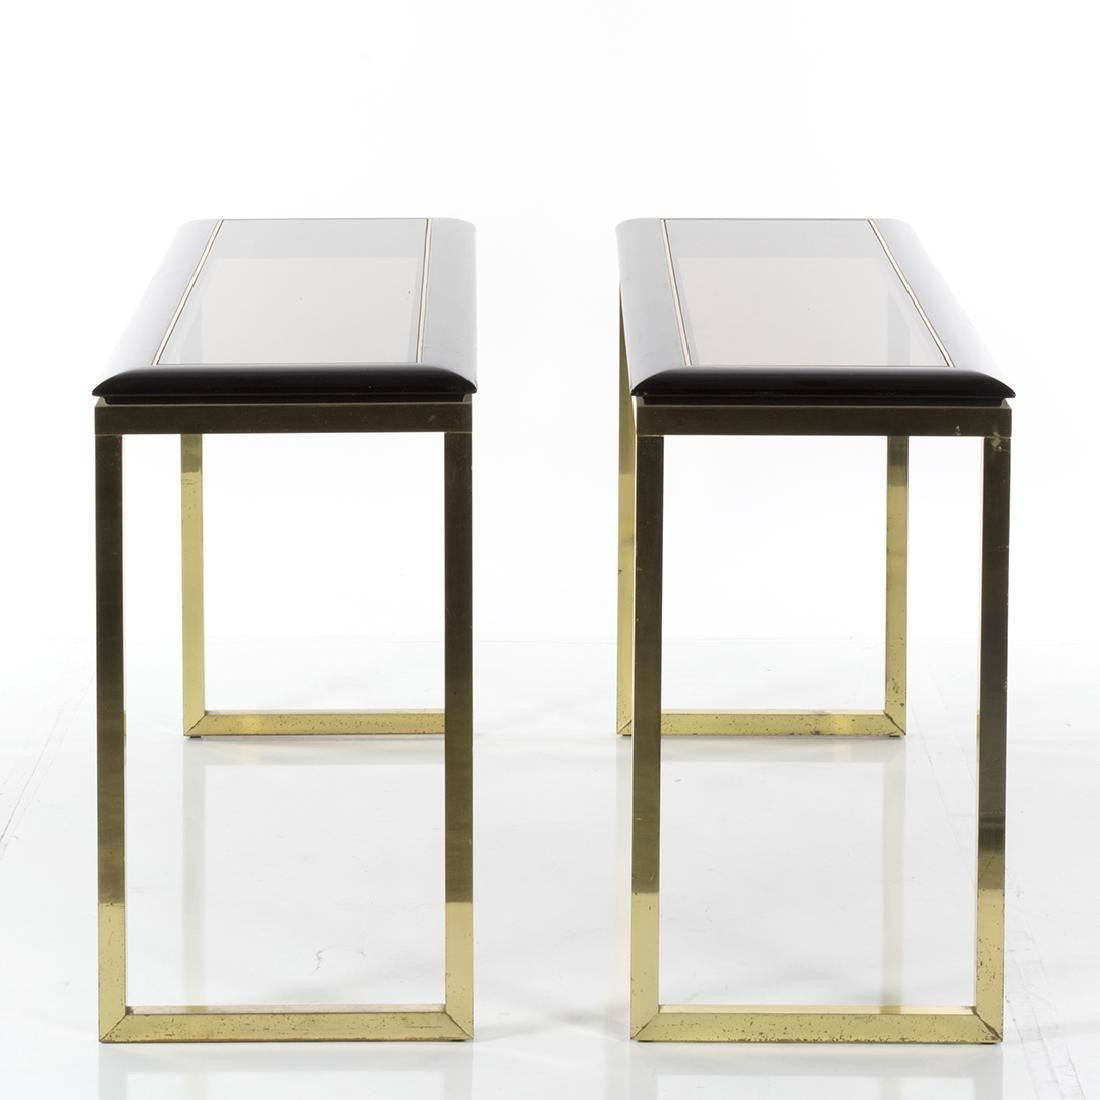 Tables page 2 haskell antiques pair of italian brass and oak console tables modern 1970s geotapseo Image collections